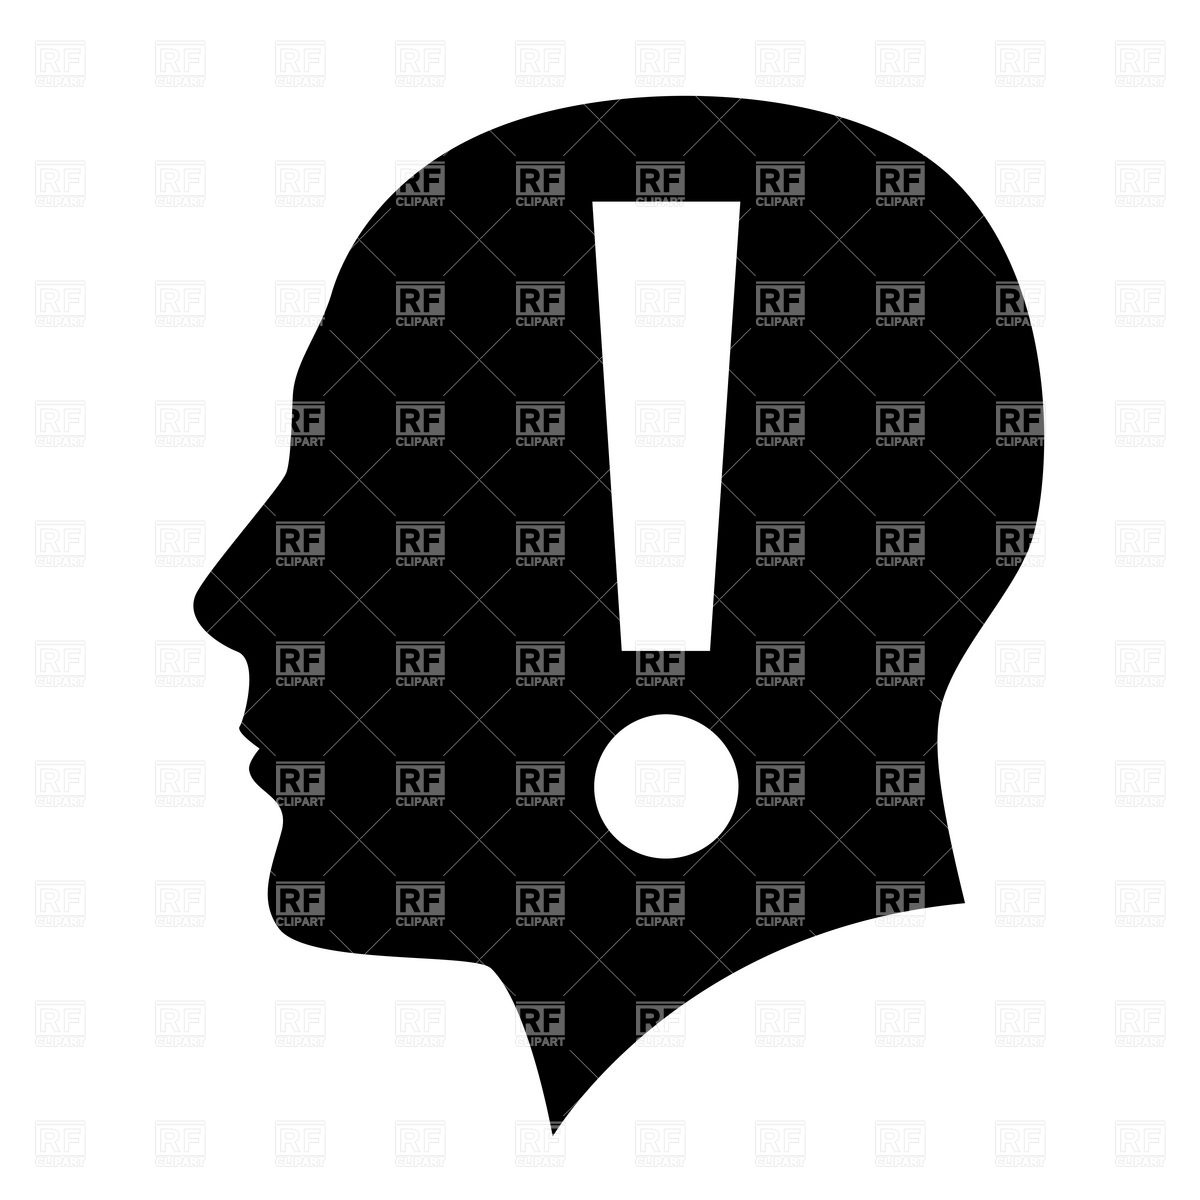 Head silhouette with exclamation point mark inside Vector Image.